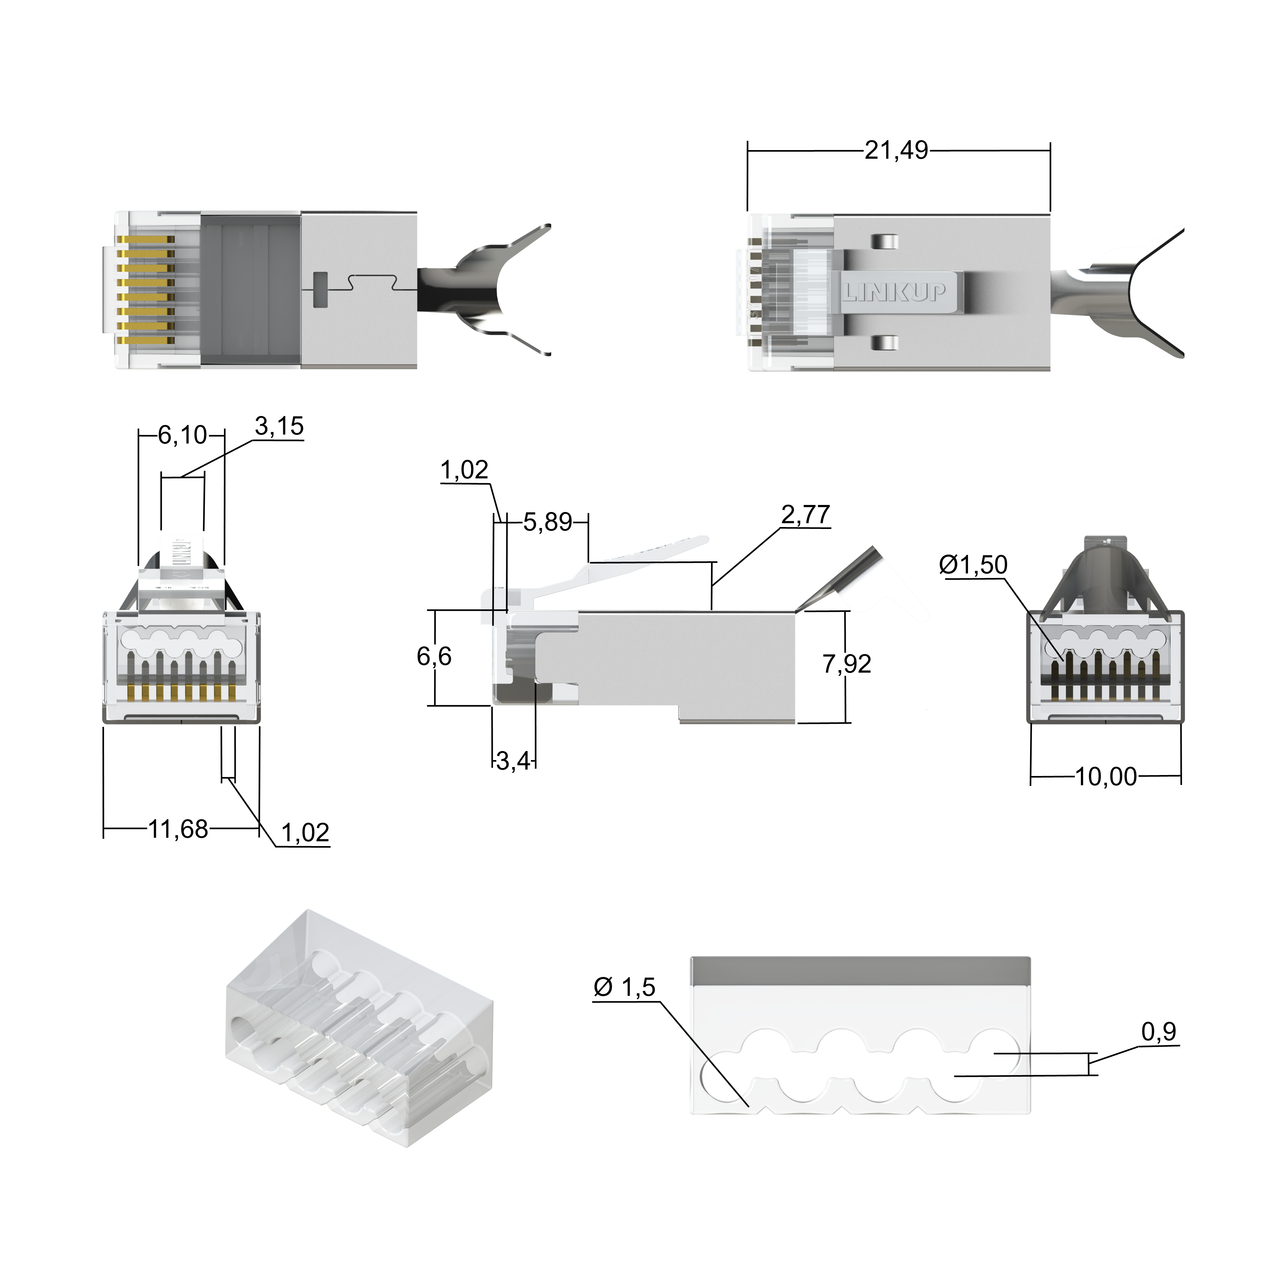 [linkup] rj45 connectors cat6a ethernet shielded modular plugs | for large  diameter wires (22awg) termination